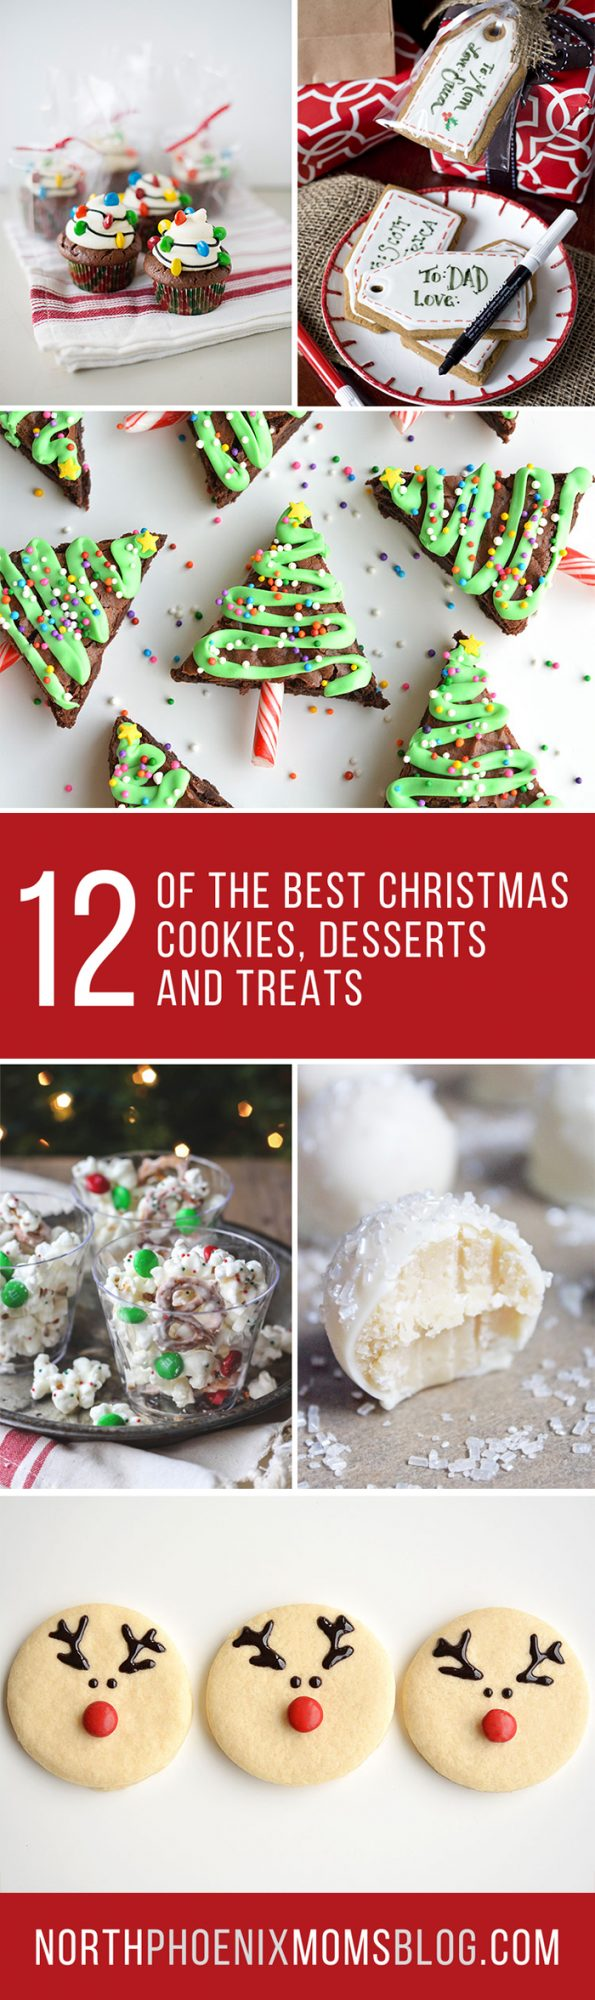 12-of-the-best-christmas-cookies-desserts-and-treats